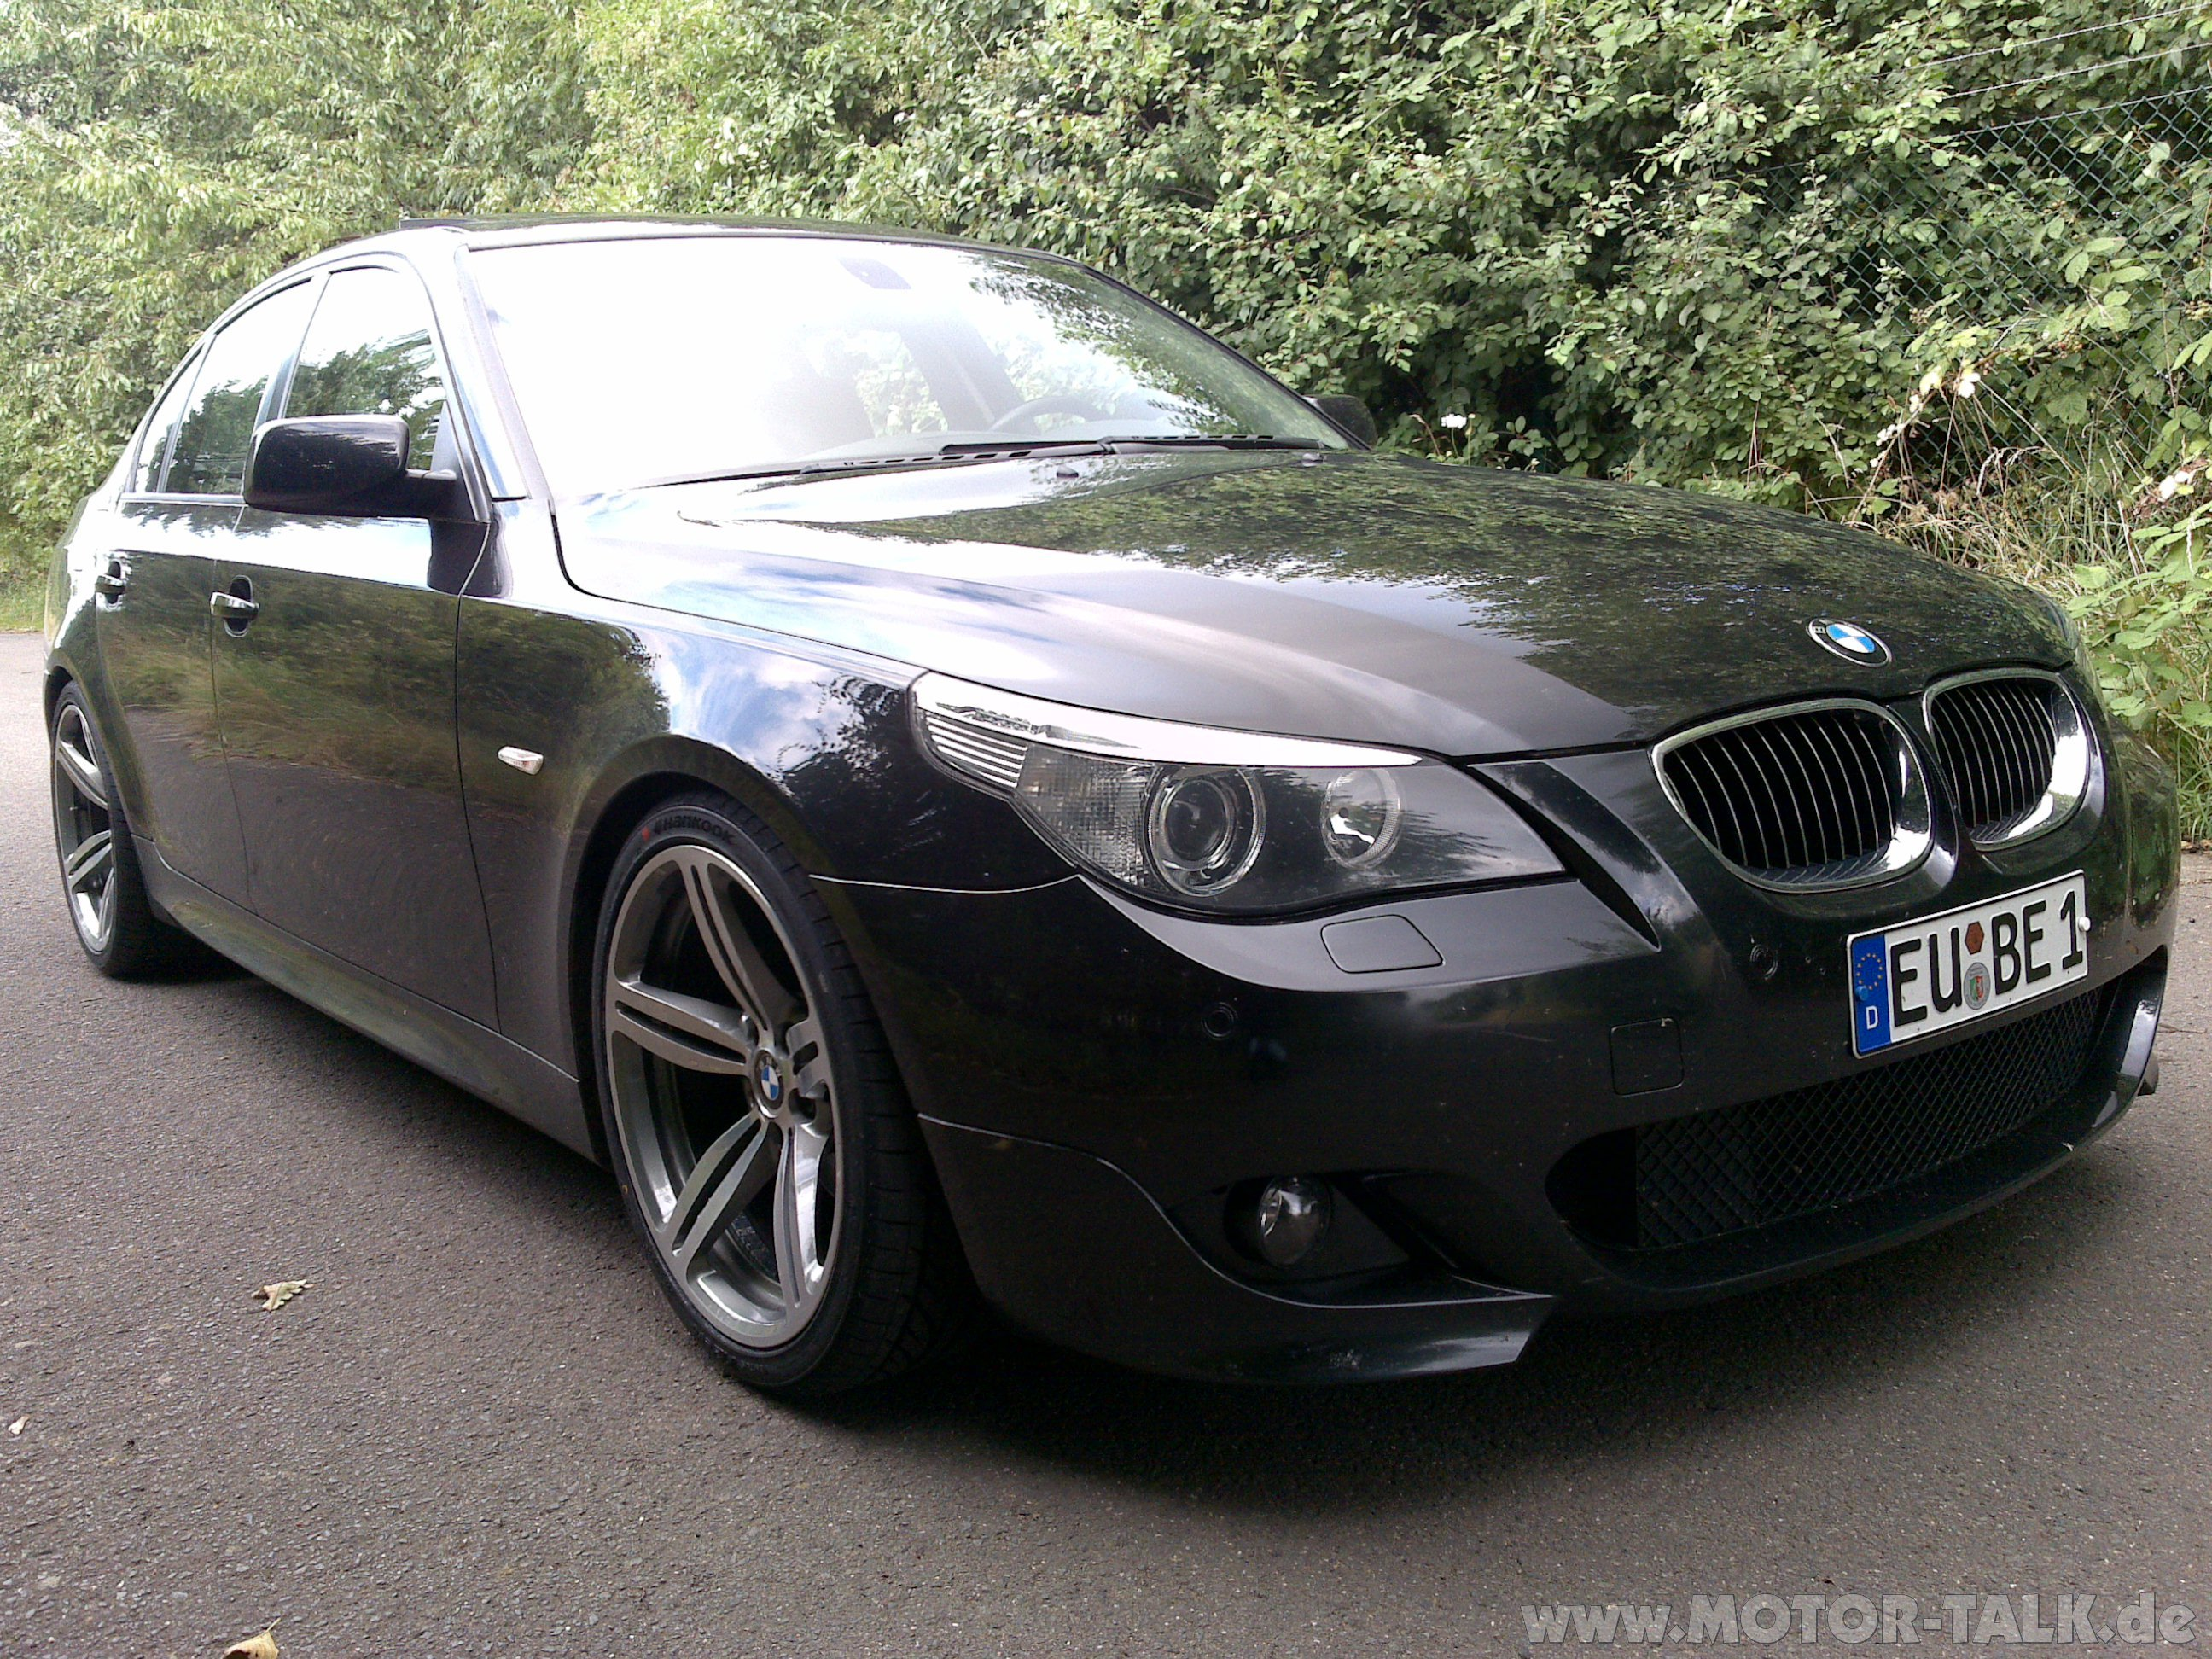 BMW 530d 2001: Review, Amazing Pictures and Images – Look at the car